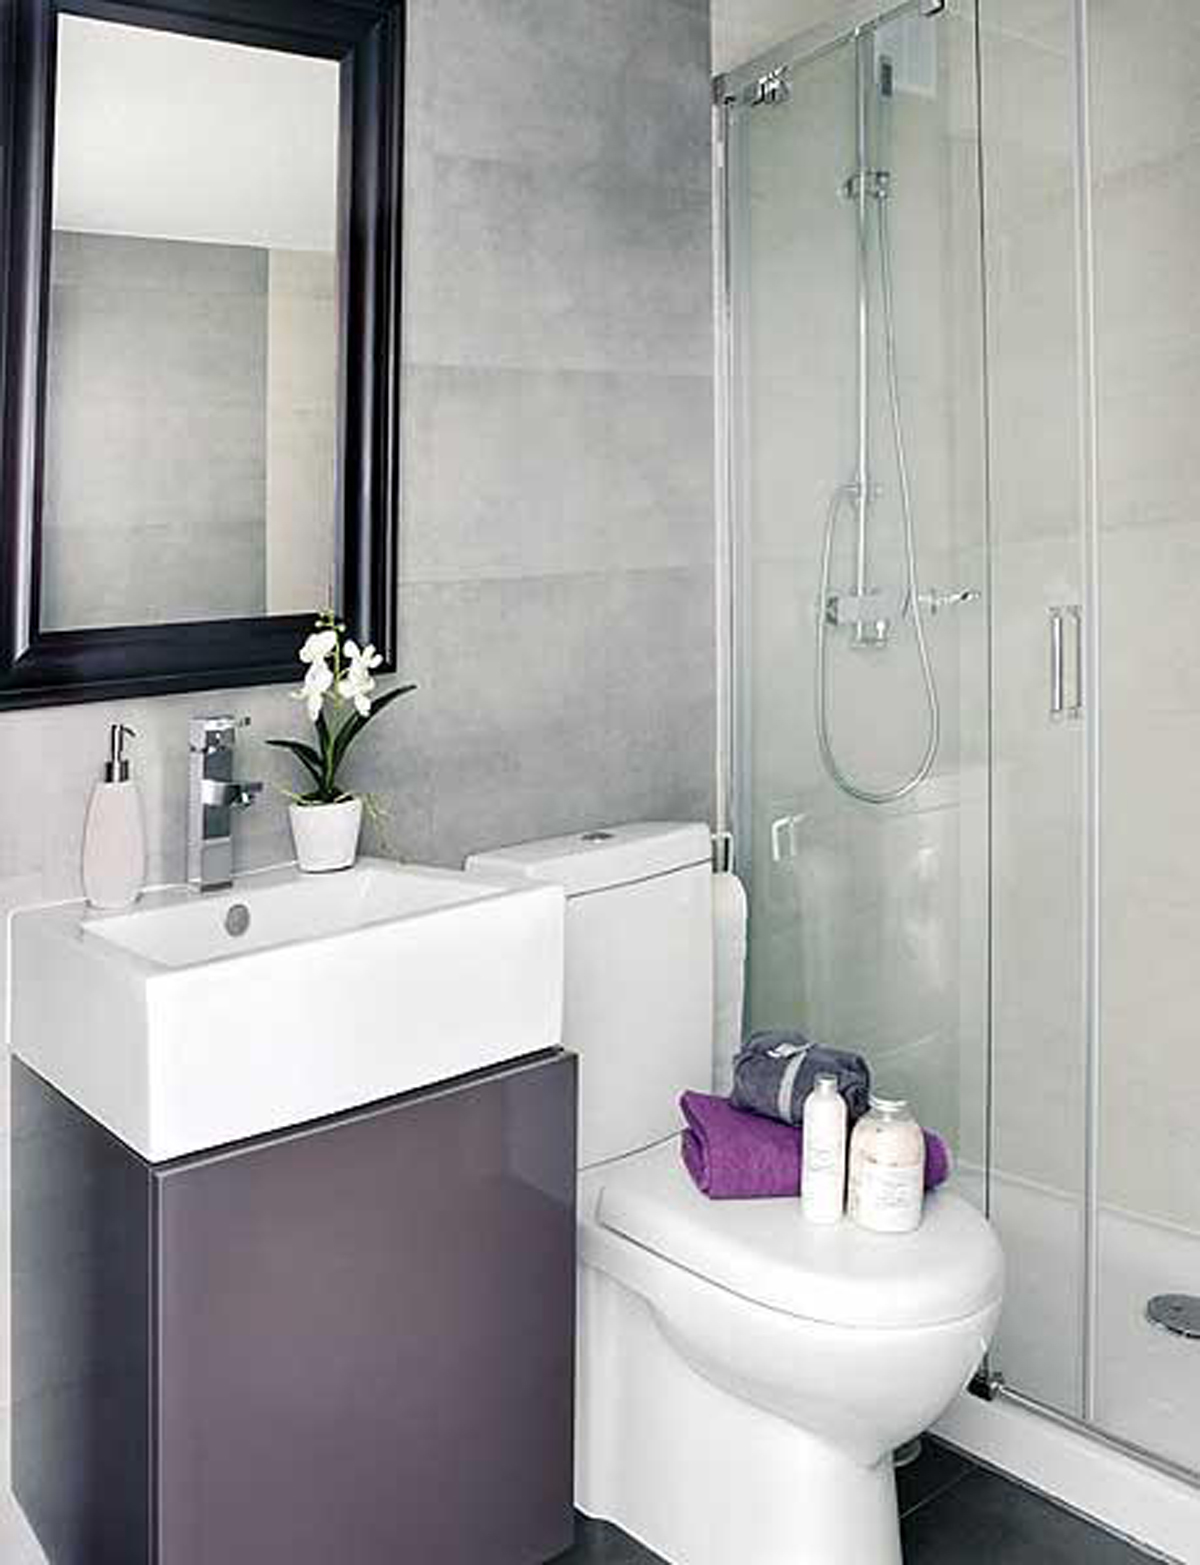 Toilet Room Designs: Ideas For The Small Shower Room